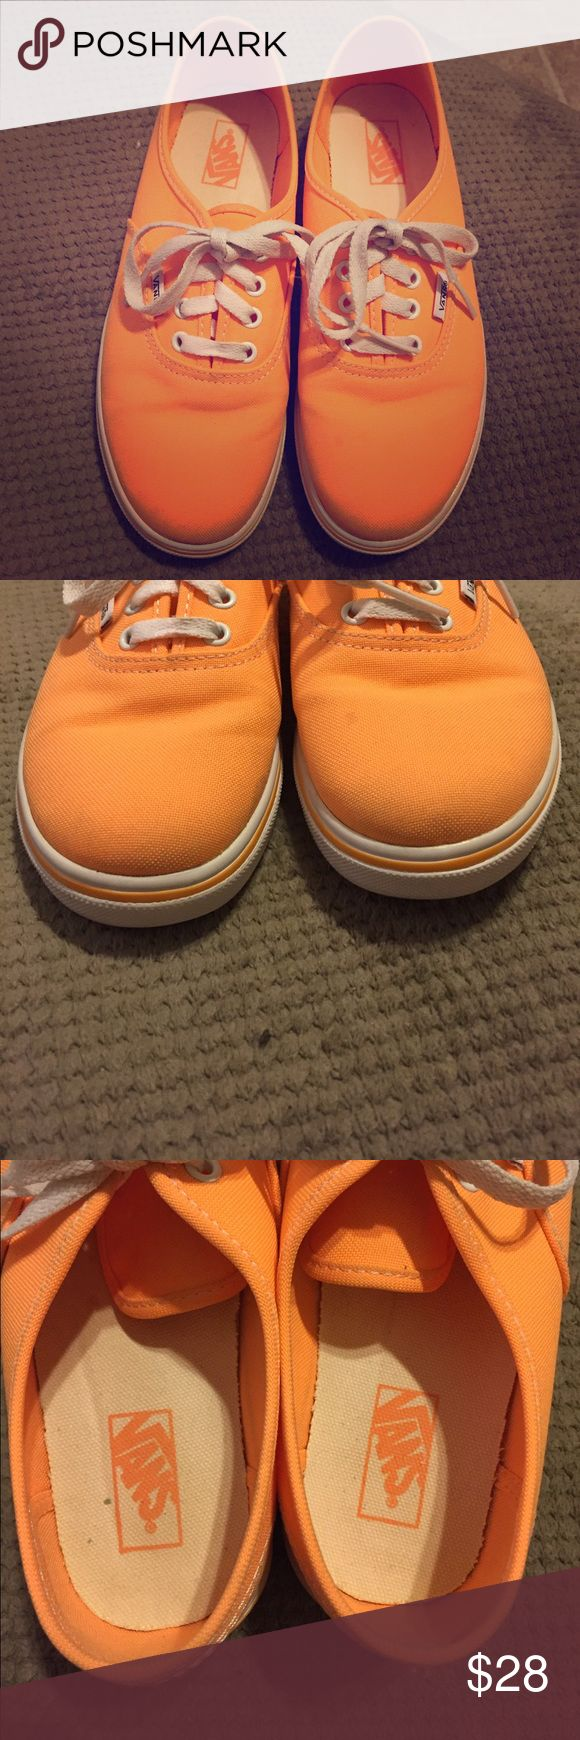 Neon orange vans Bright orange vans. Like new aside from pictured stain. Price firm. Vans Shoes Sneakers